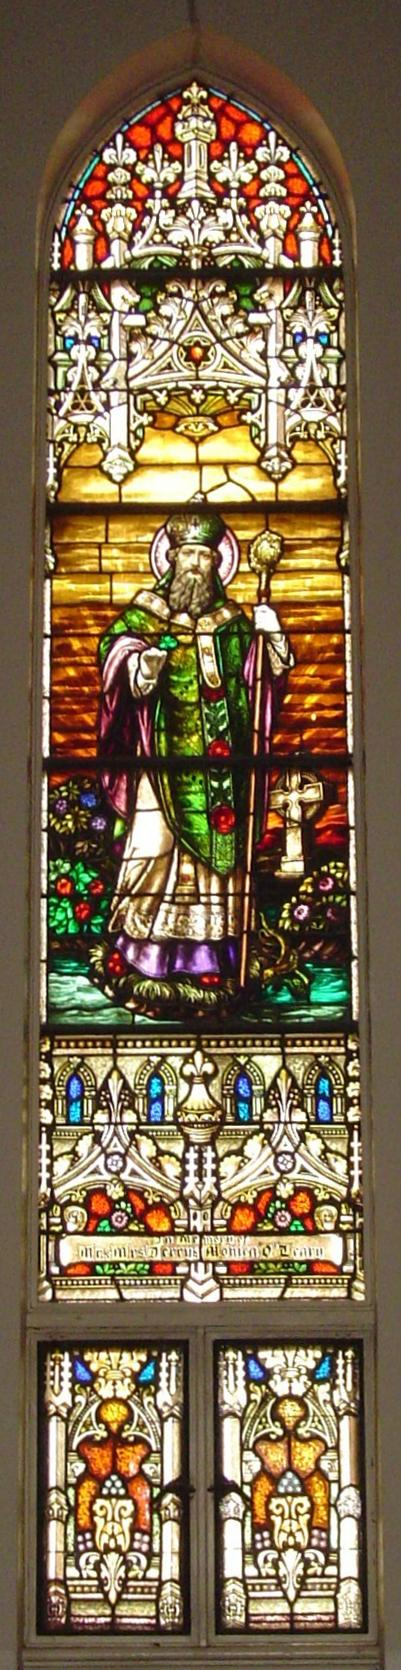 One of many stained glass windows at Holy Name Church